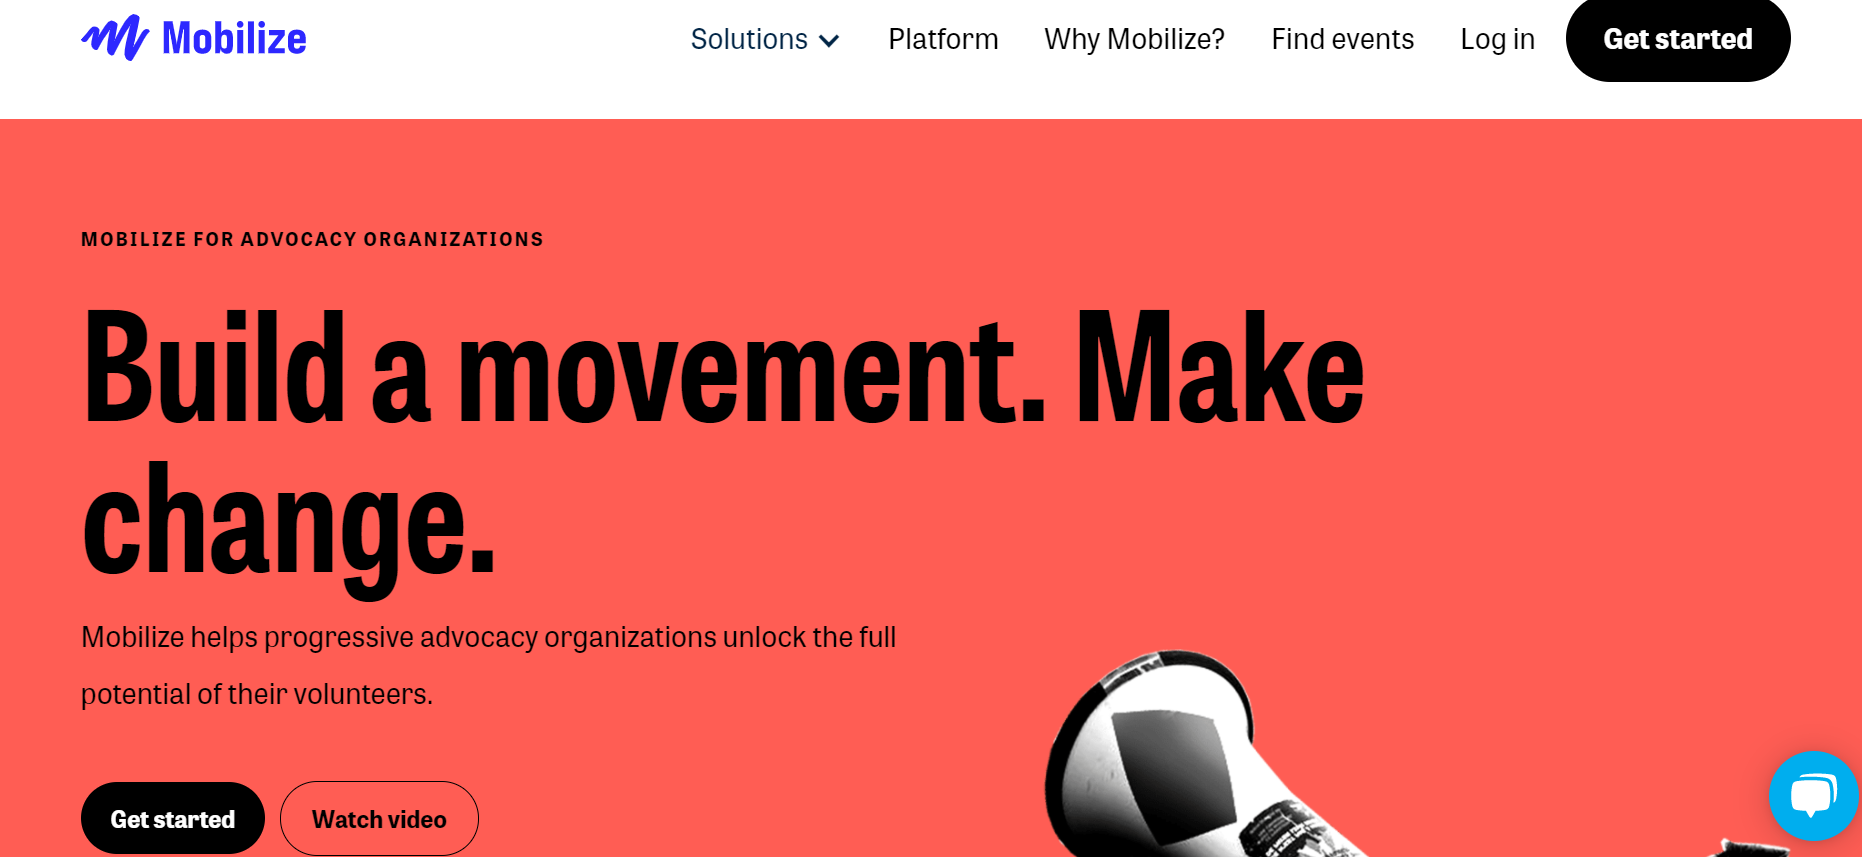 Mobilize Advocacy Software homepage screenshot